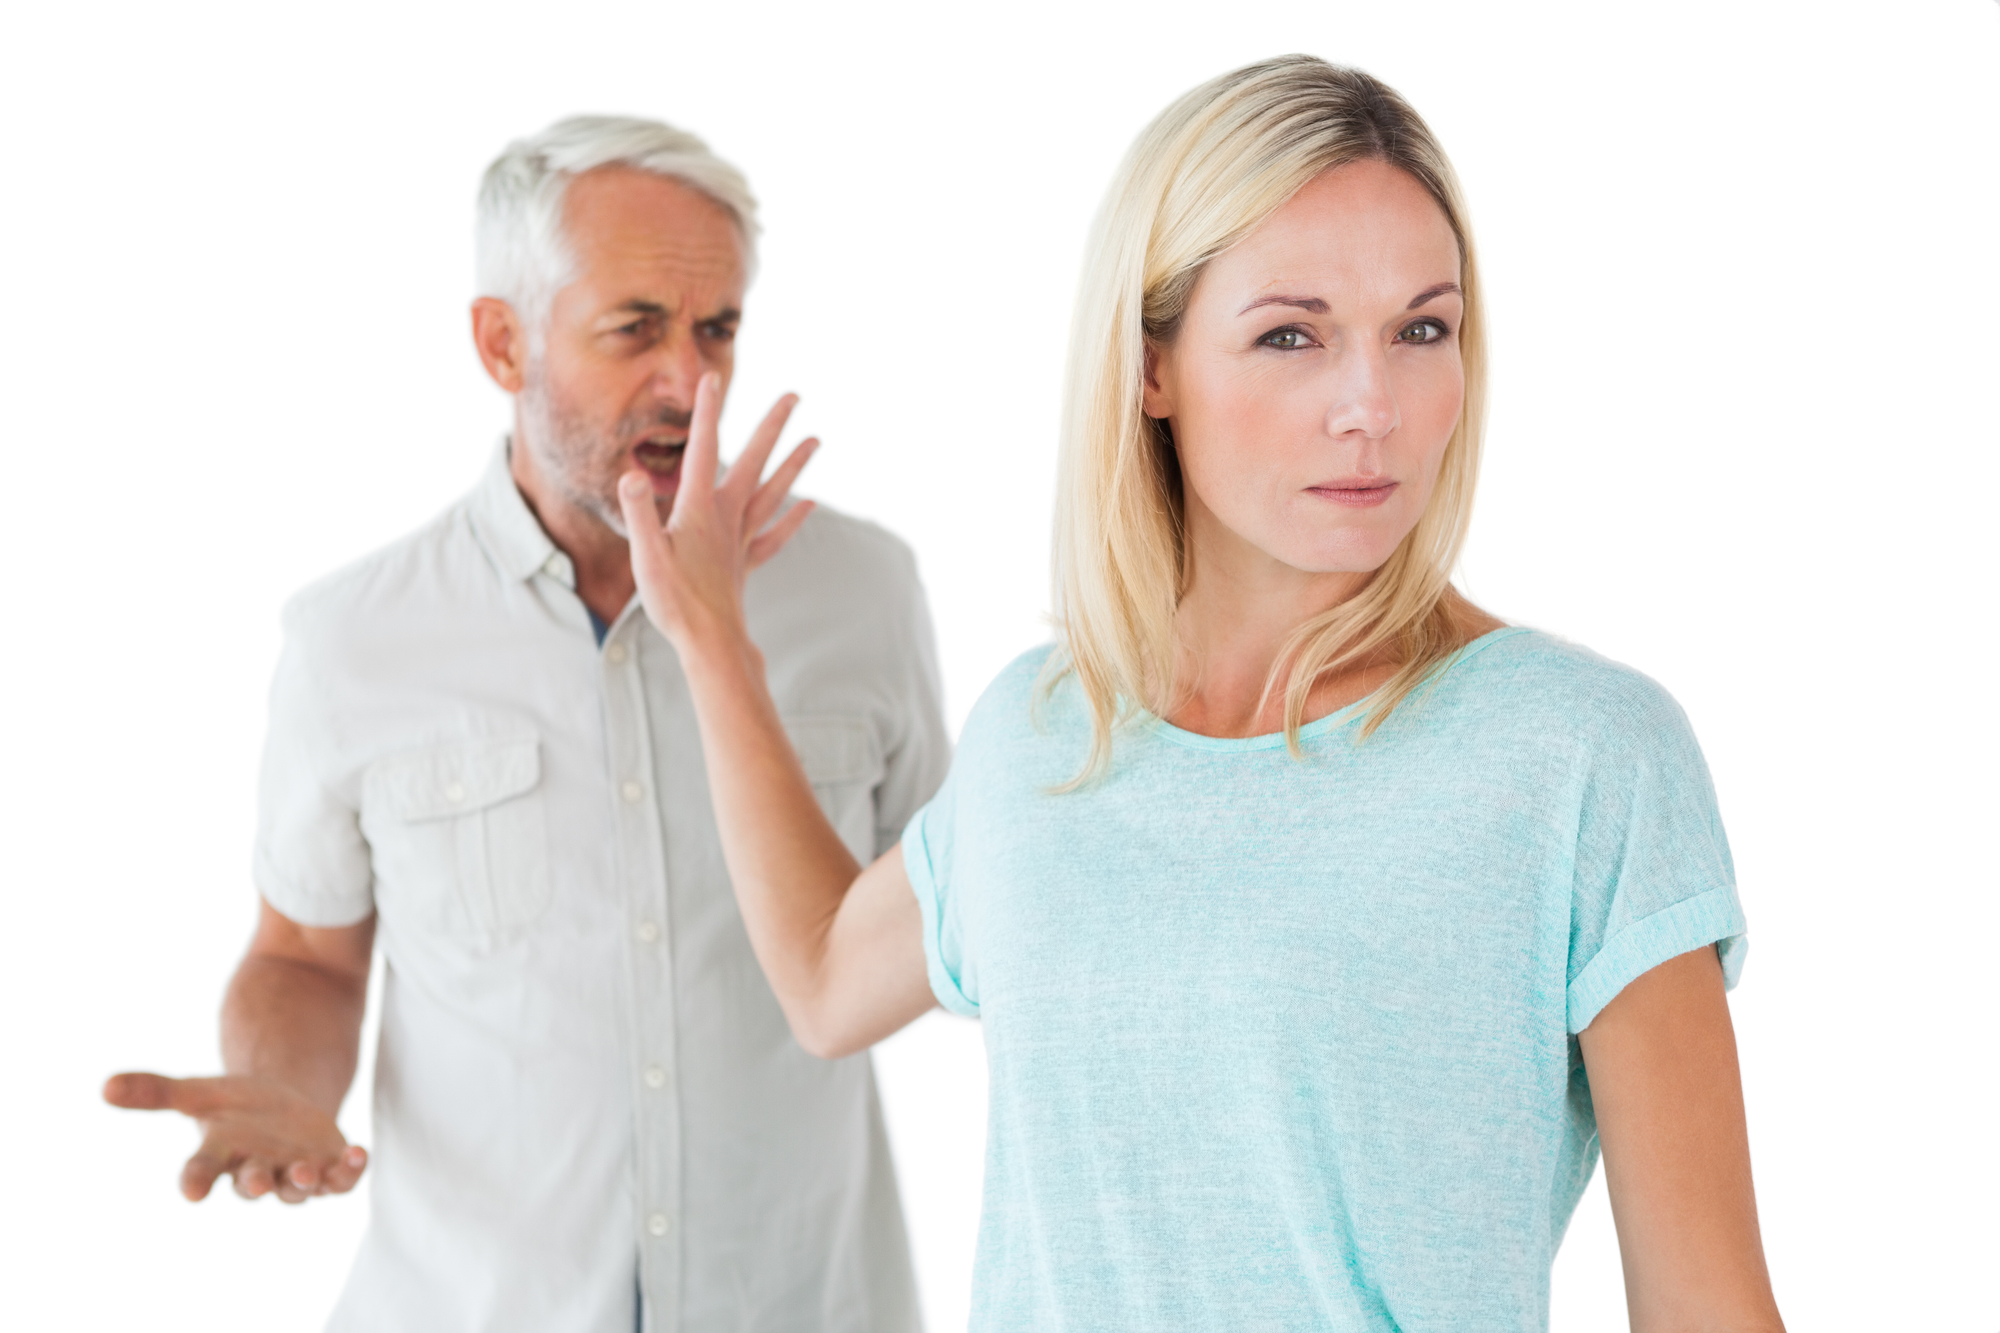 Woman not listening to her angry partner on white background